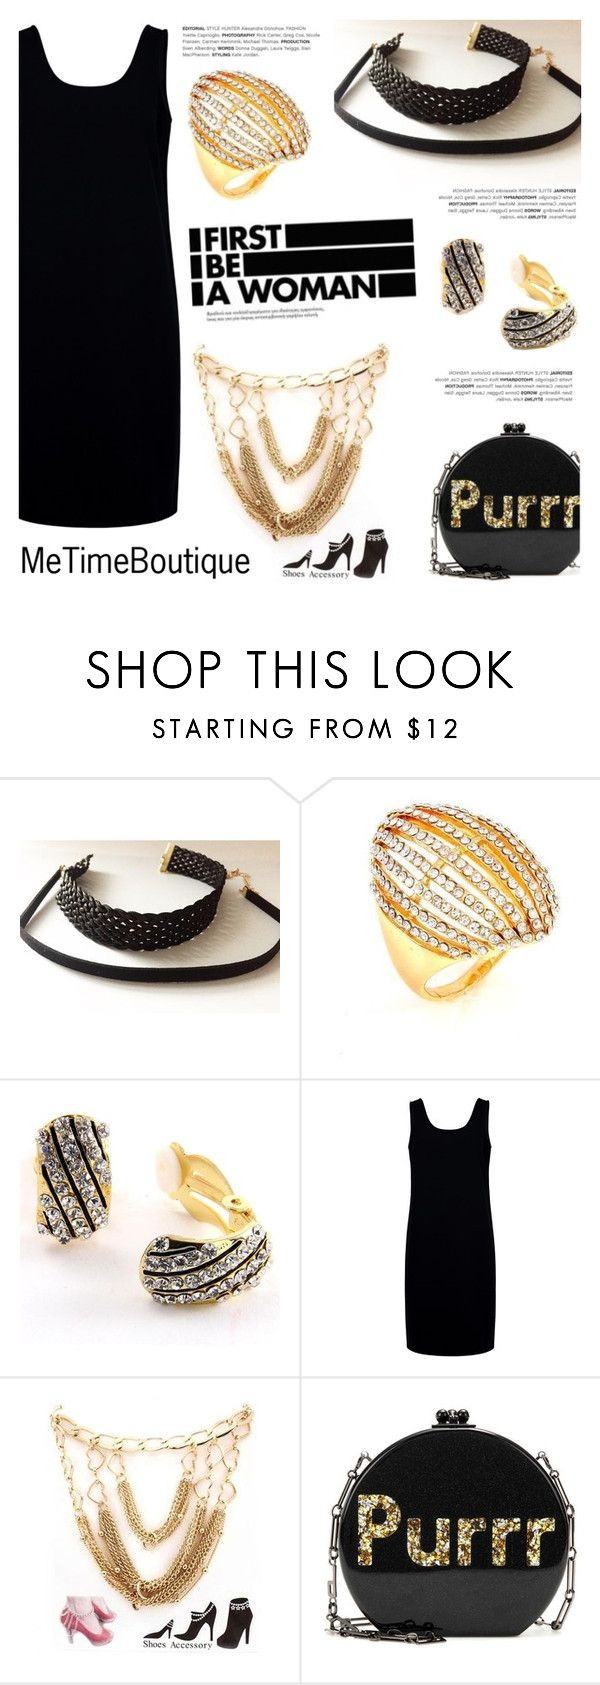 """""""First be a woman!"""" by helenevlacho ❤ liked on Polyvore featuring Être Cécile, Edie Parker and metimeboutique"""